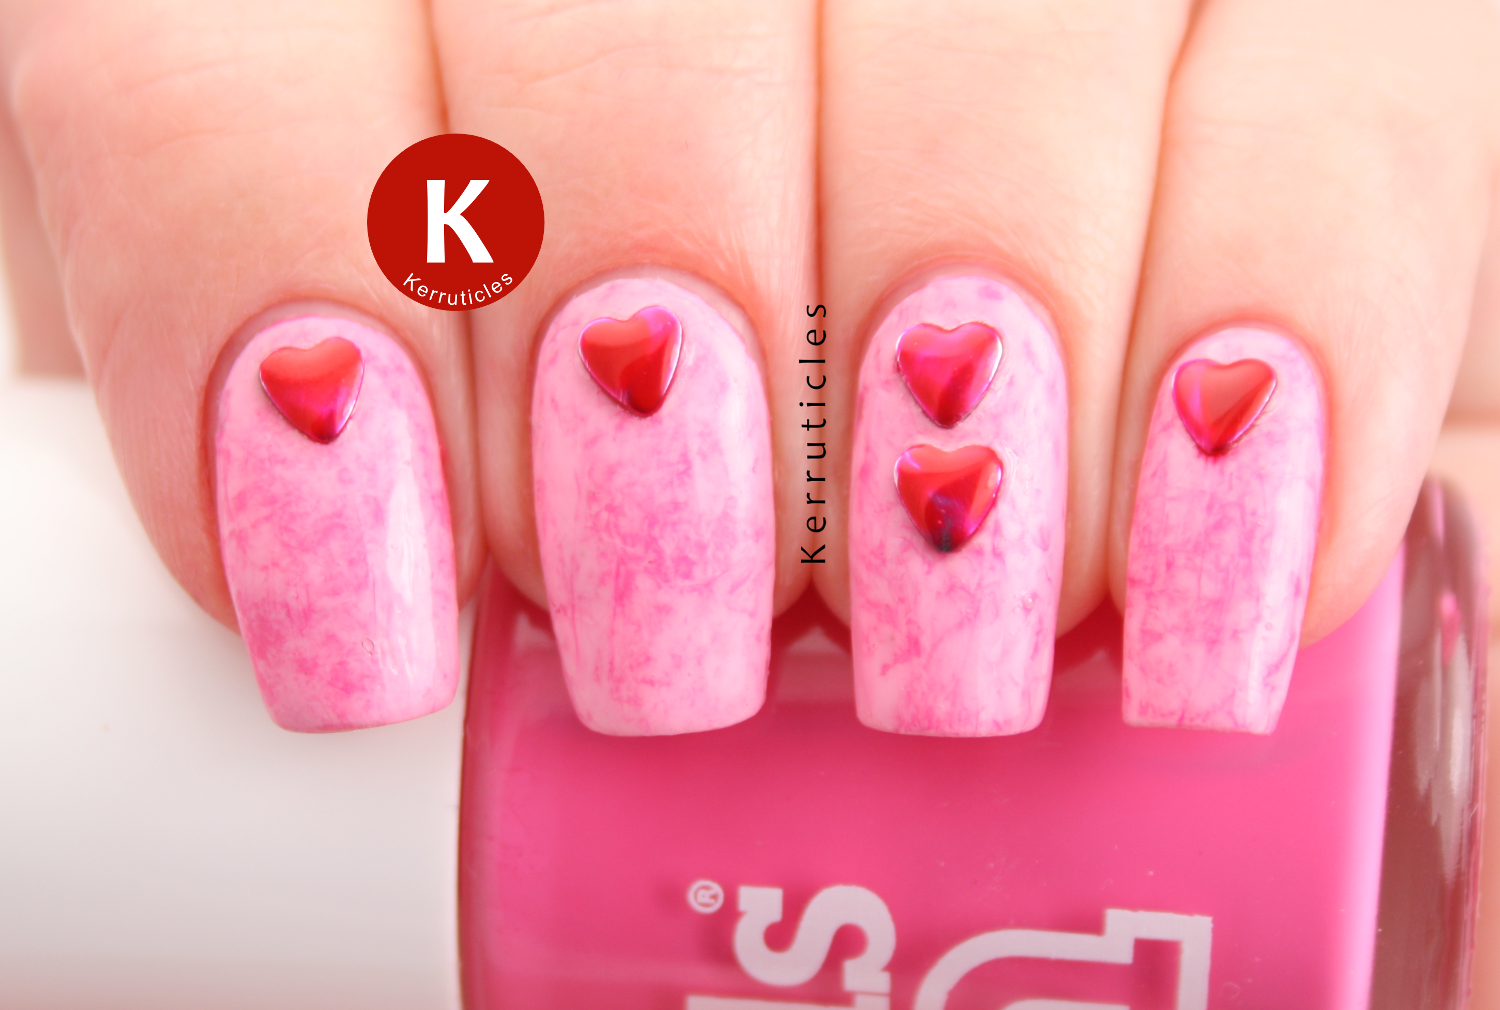 Candy floss archives kerruticles pink cling film saran wrap manicure using collection 2000 candy floss and models own pink blush with red heart studs prinsesfo Choice Image